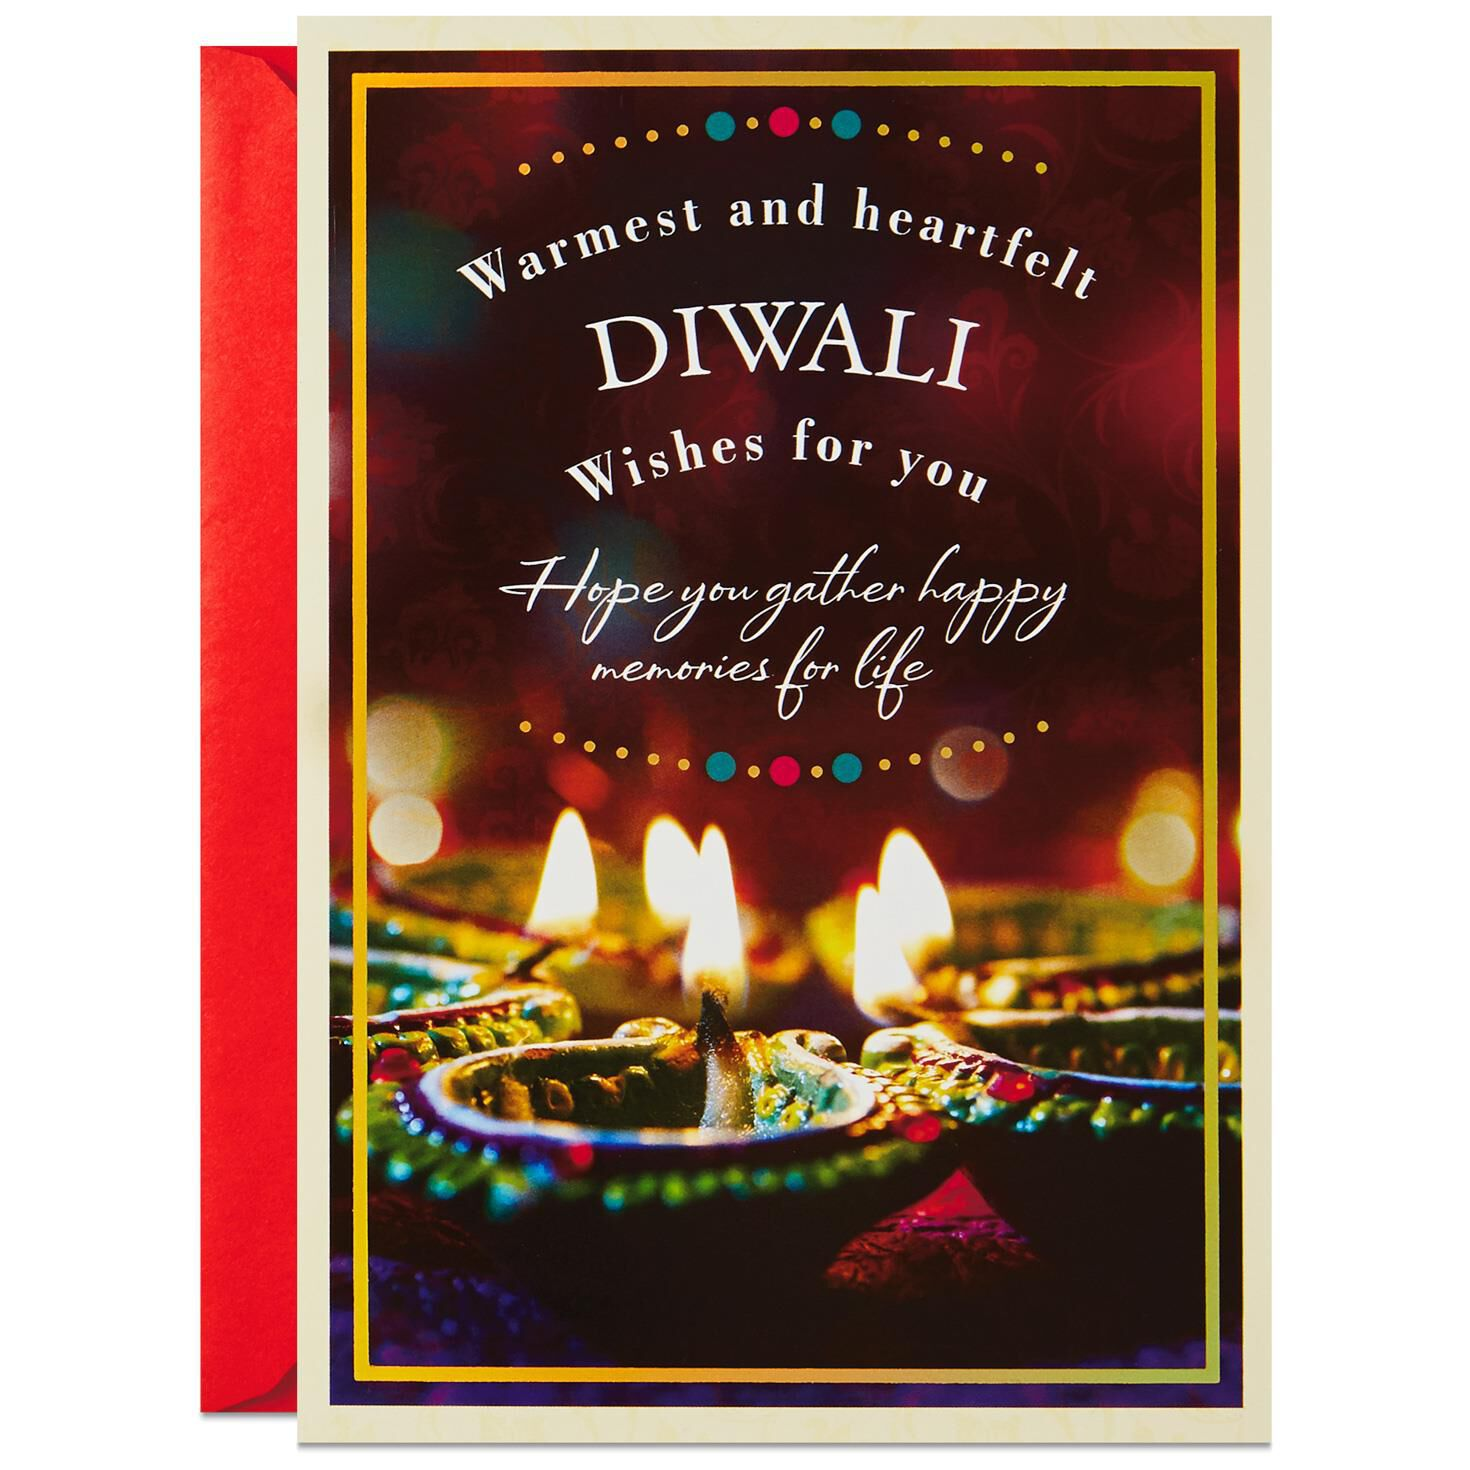 Warm and Heartfelt Wishes Diwali Card Greeting Cards Hallmark